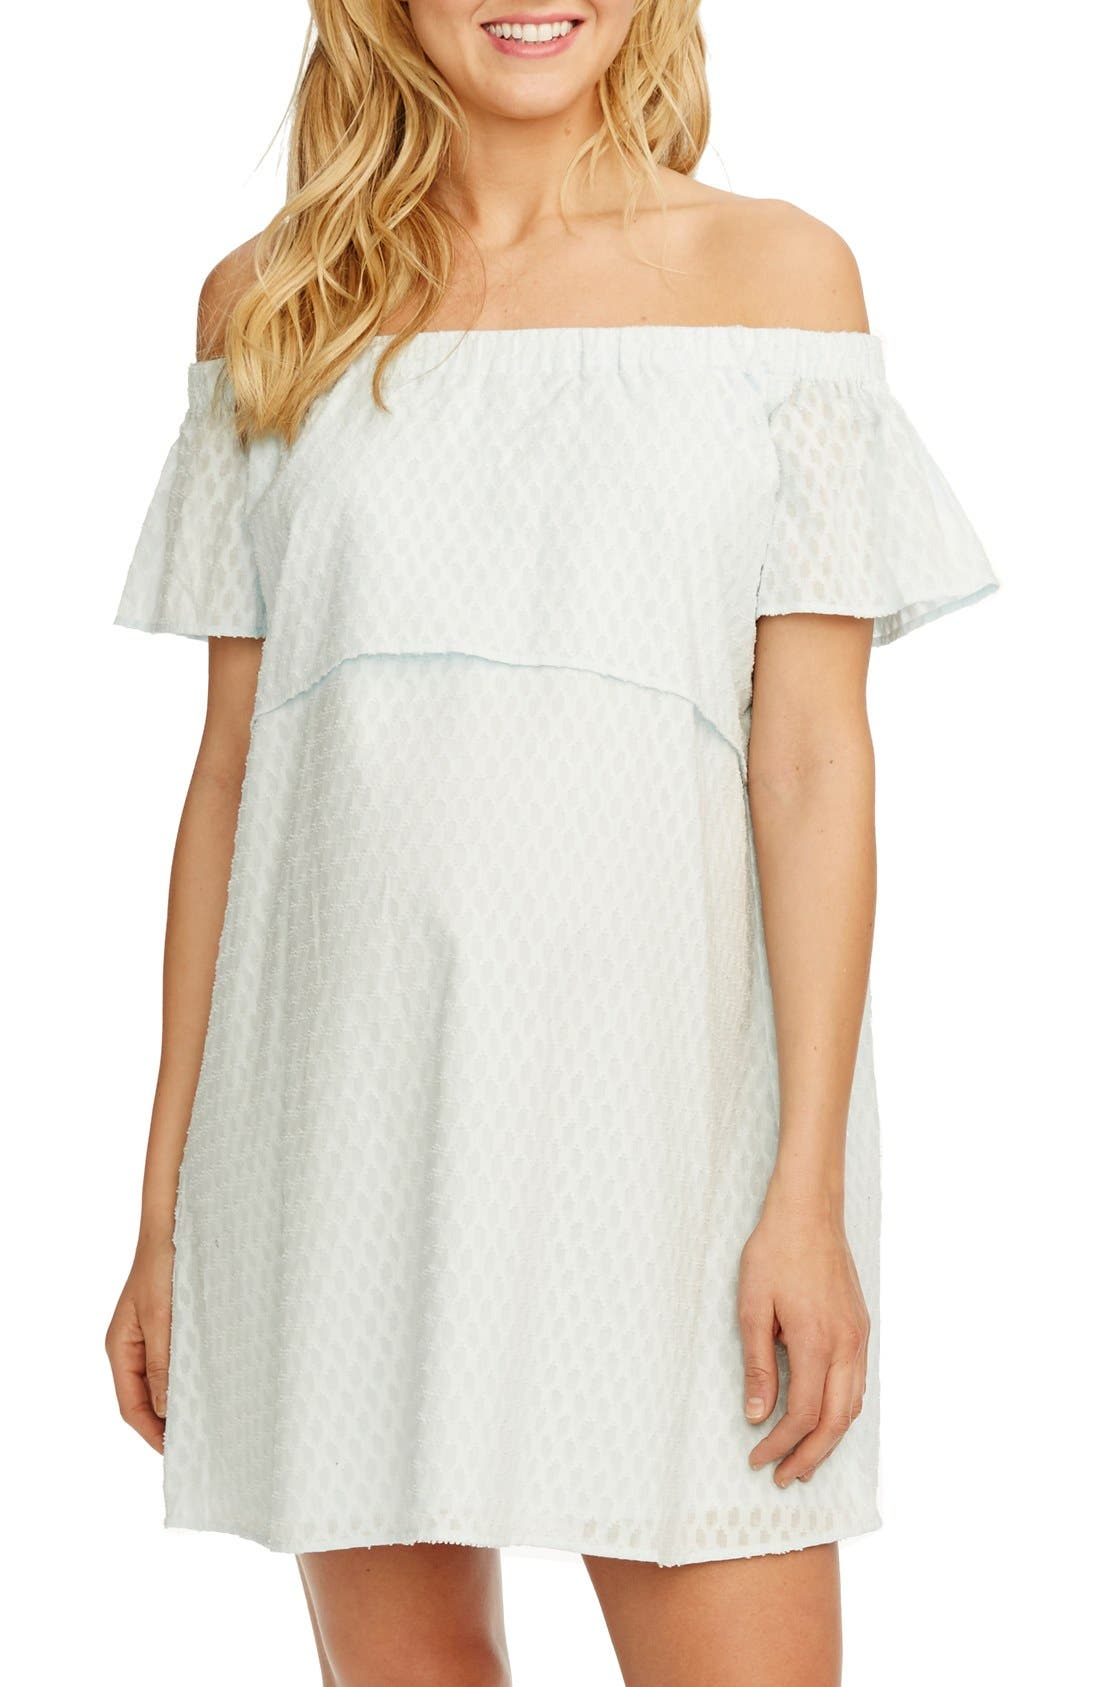 Alternate Image 1 Selected - Rosie Pope 'Camille' Off the Shoulder Maternity Dress